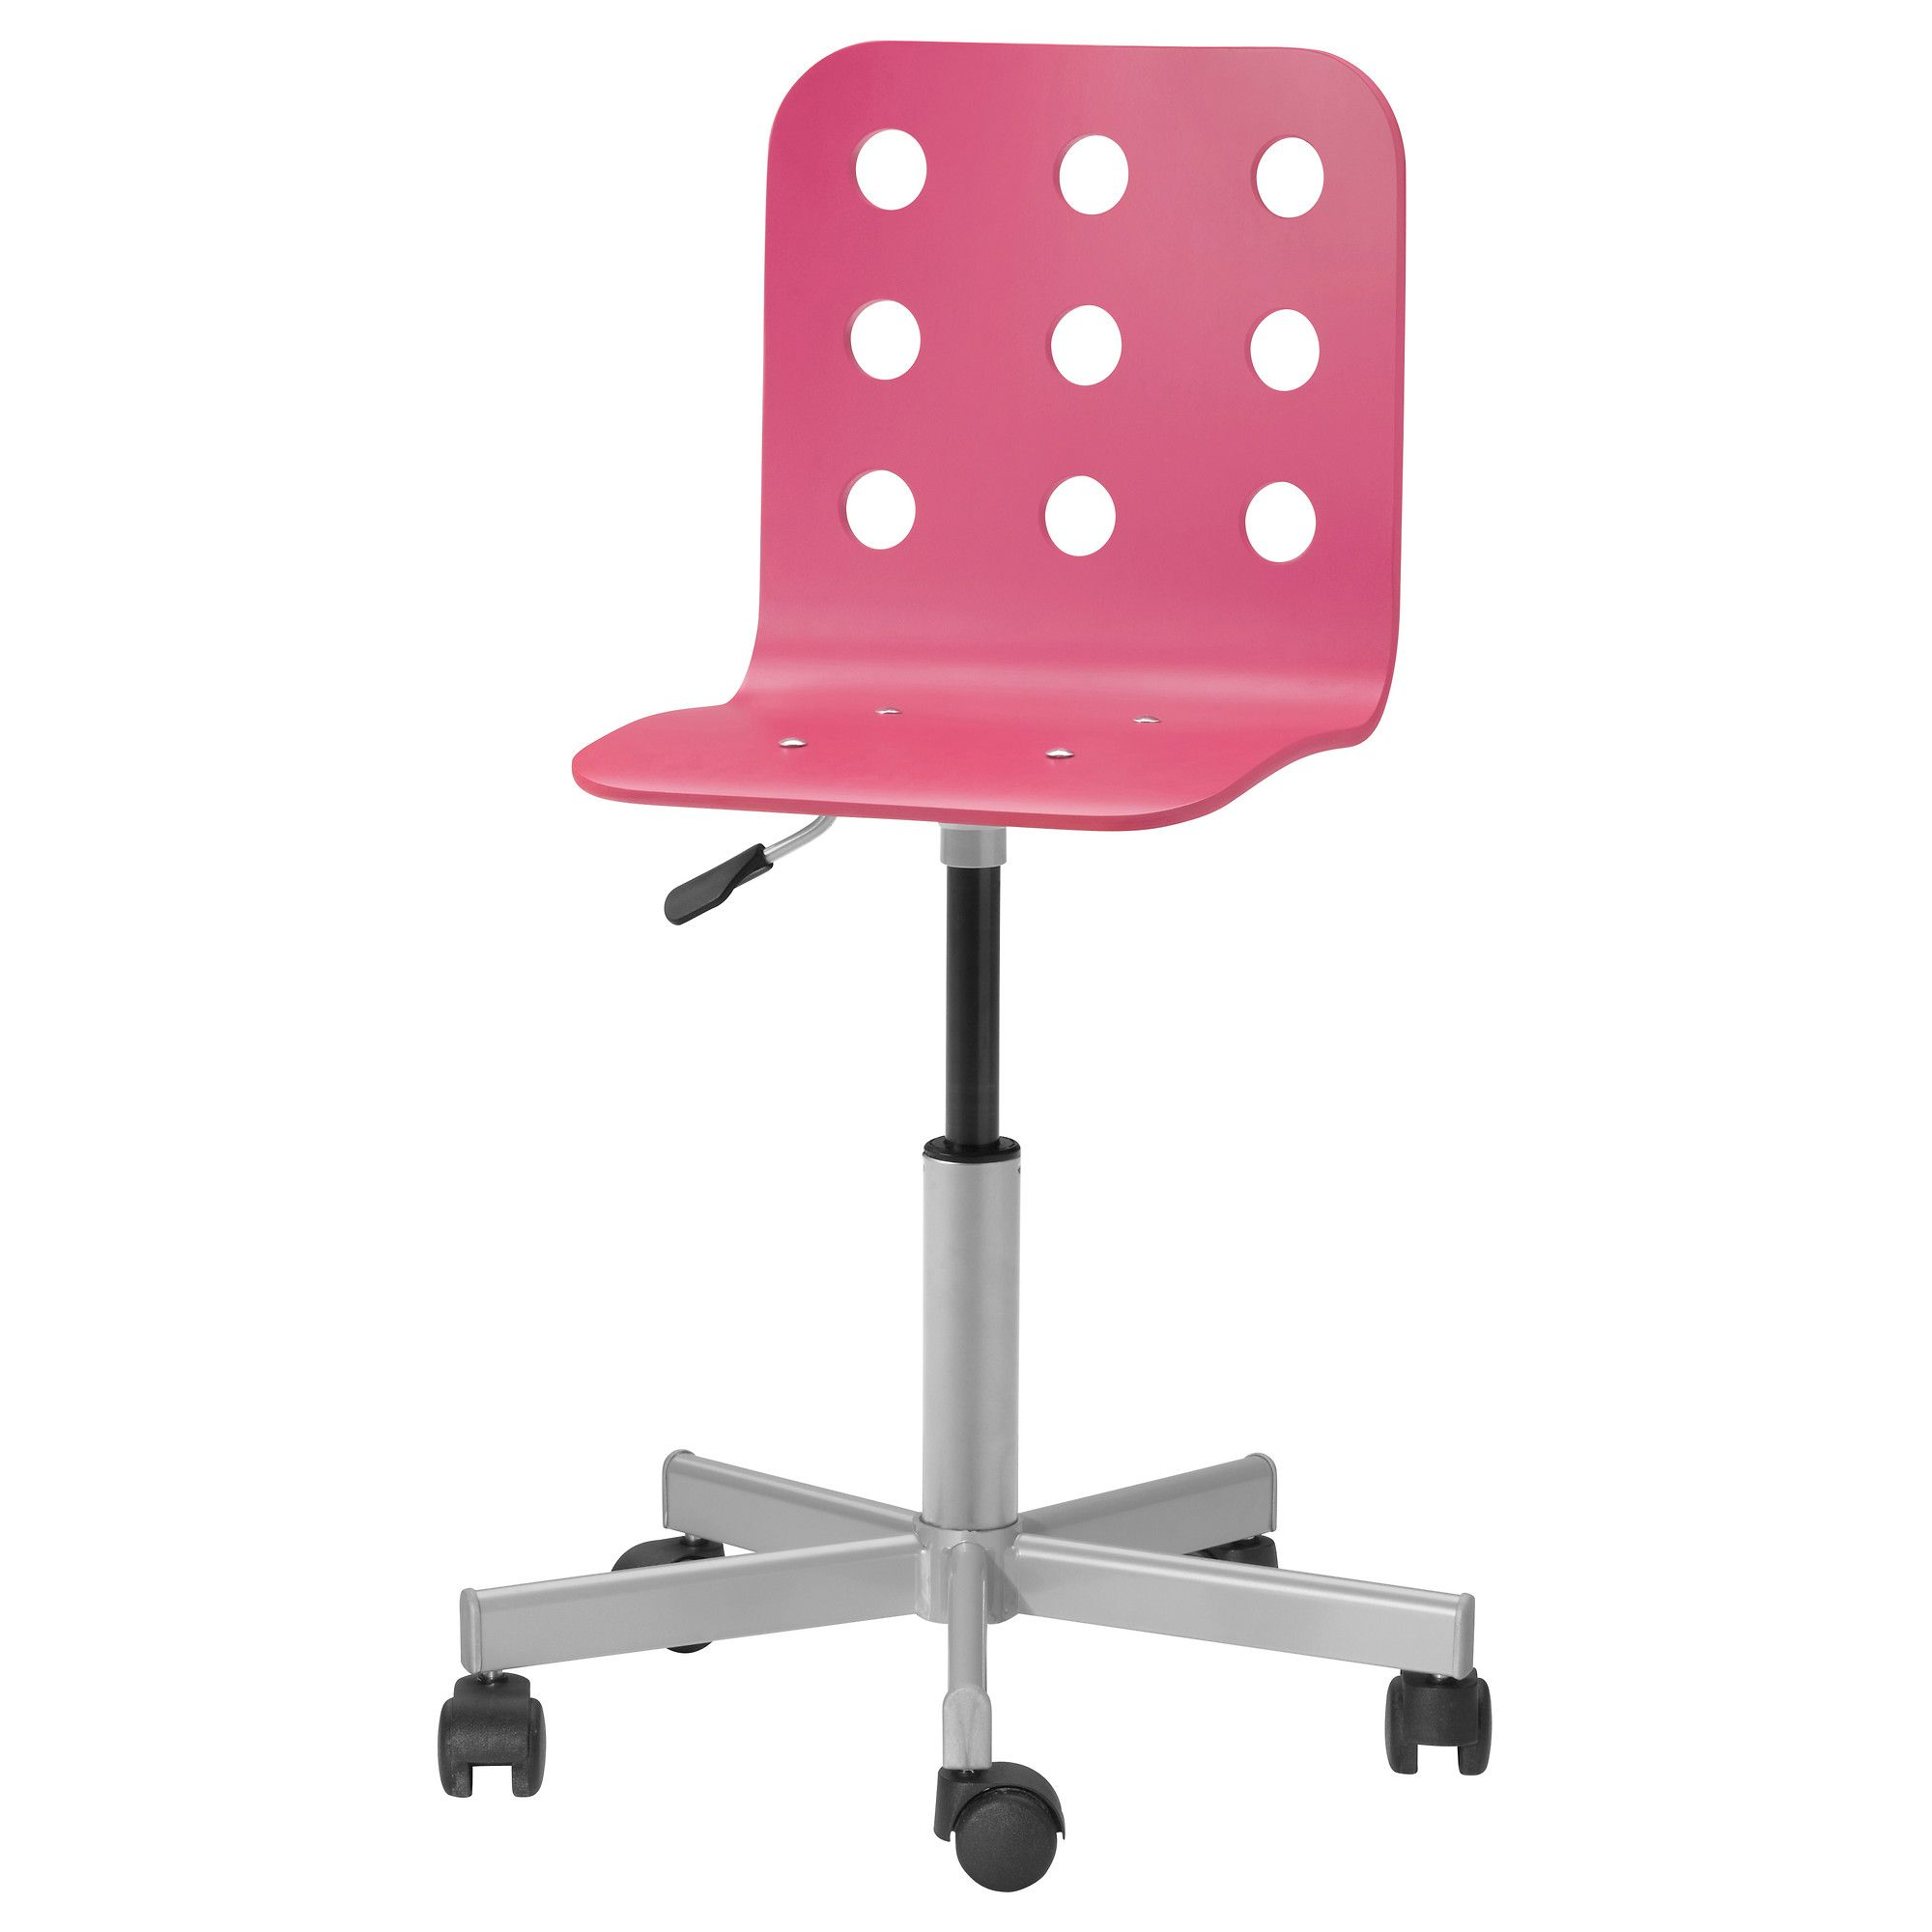 JULES Junior desk chair pink silver color IKEA $34 99